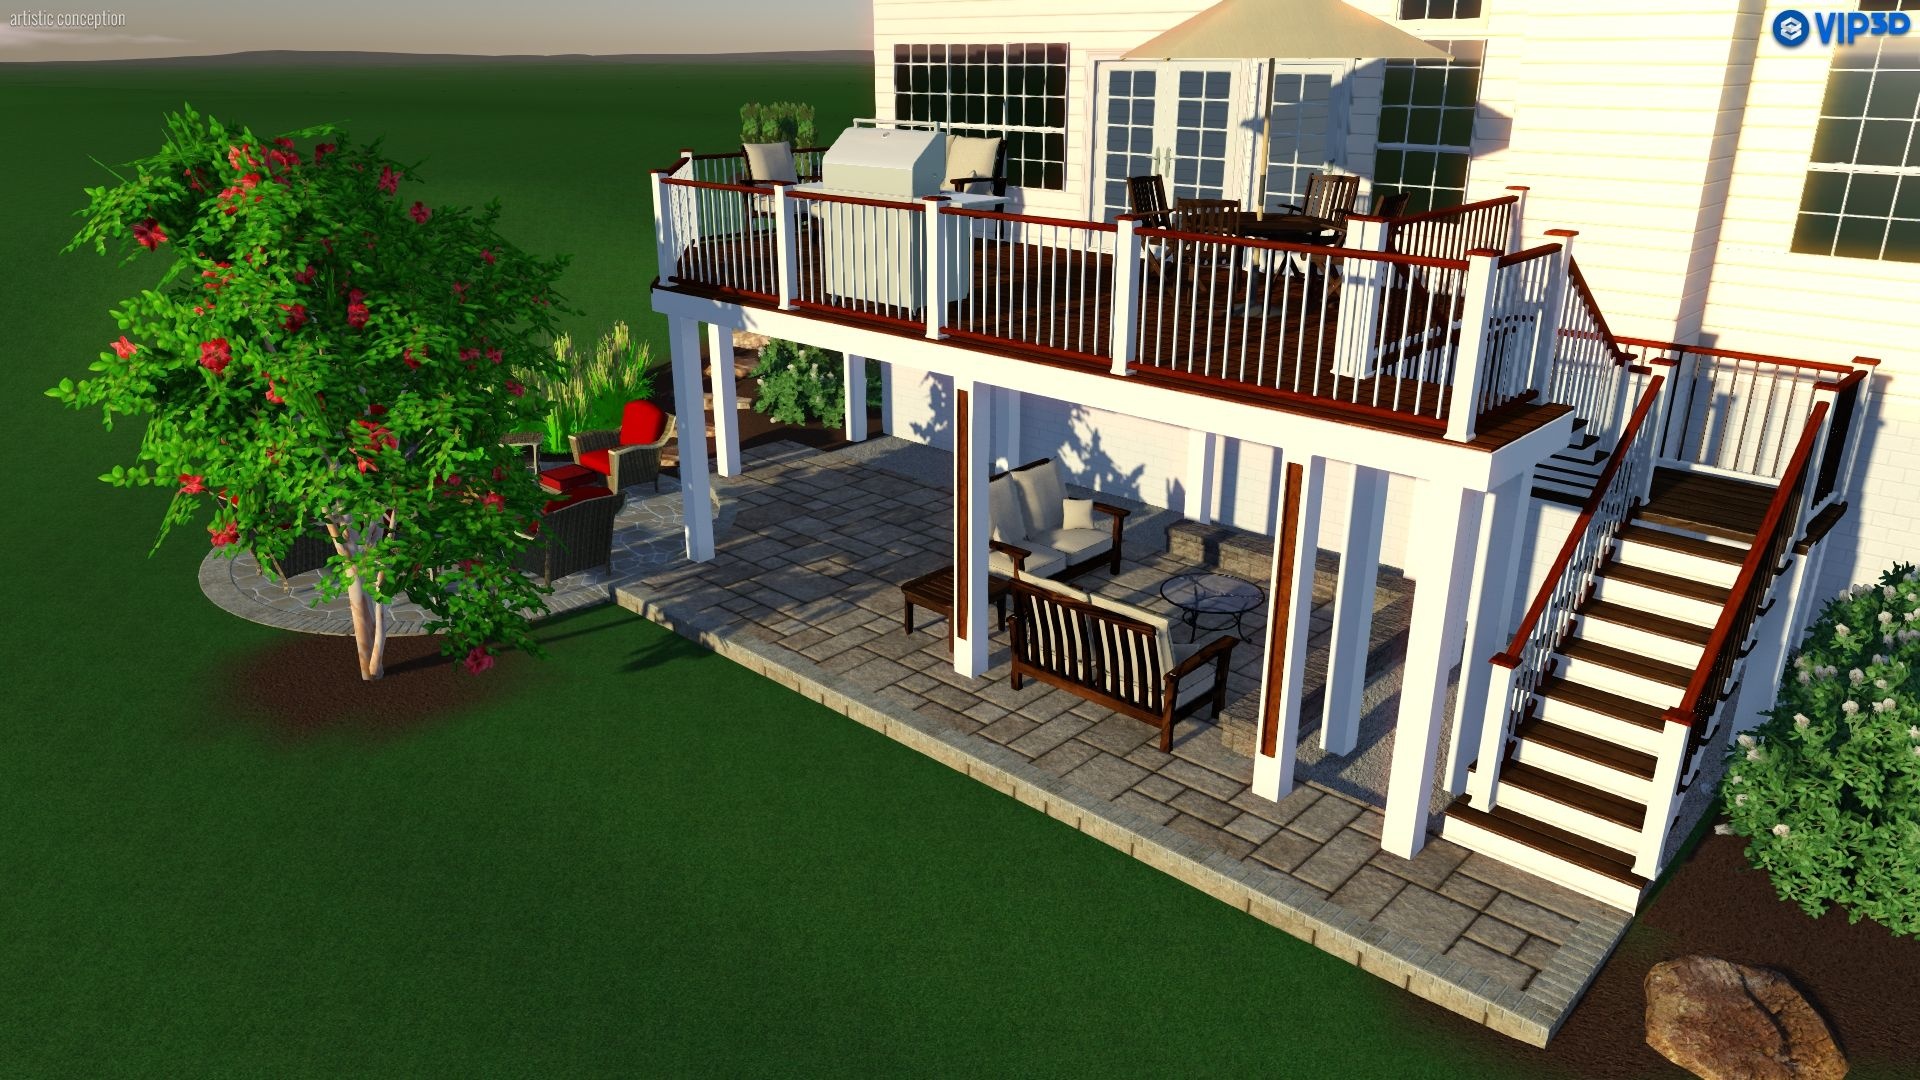 This design includes deck patio living space under the deck